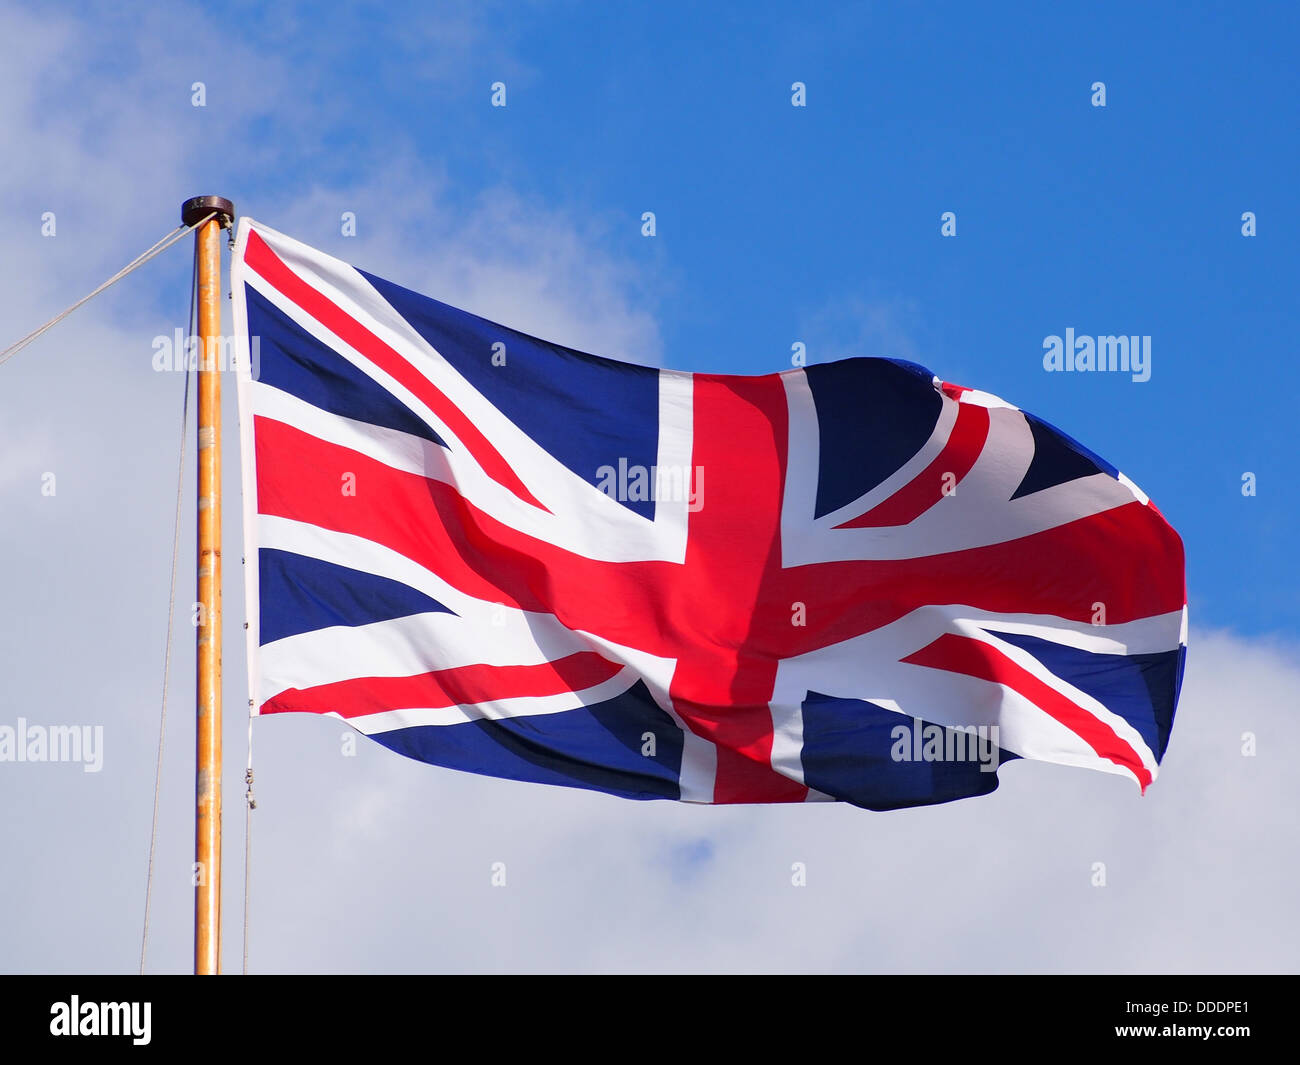 a-union-flag-flying-at-the-top-of-a-flagpole-against-a-partly-cloudy-DDDPE1.jpg